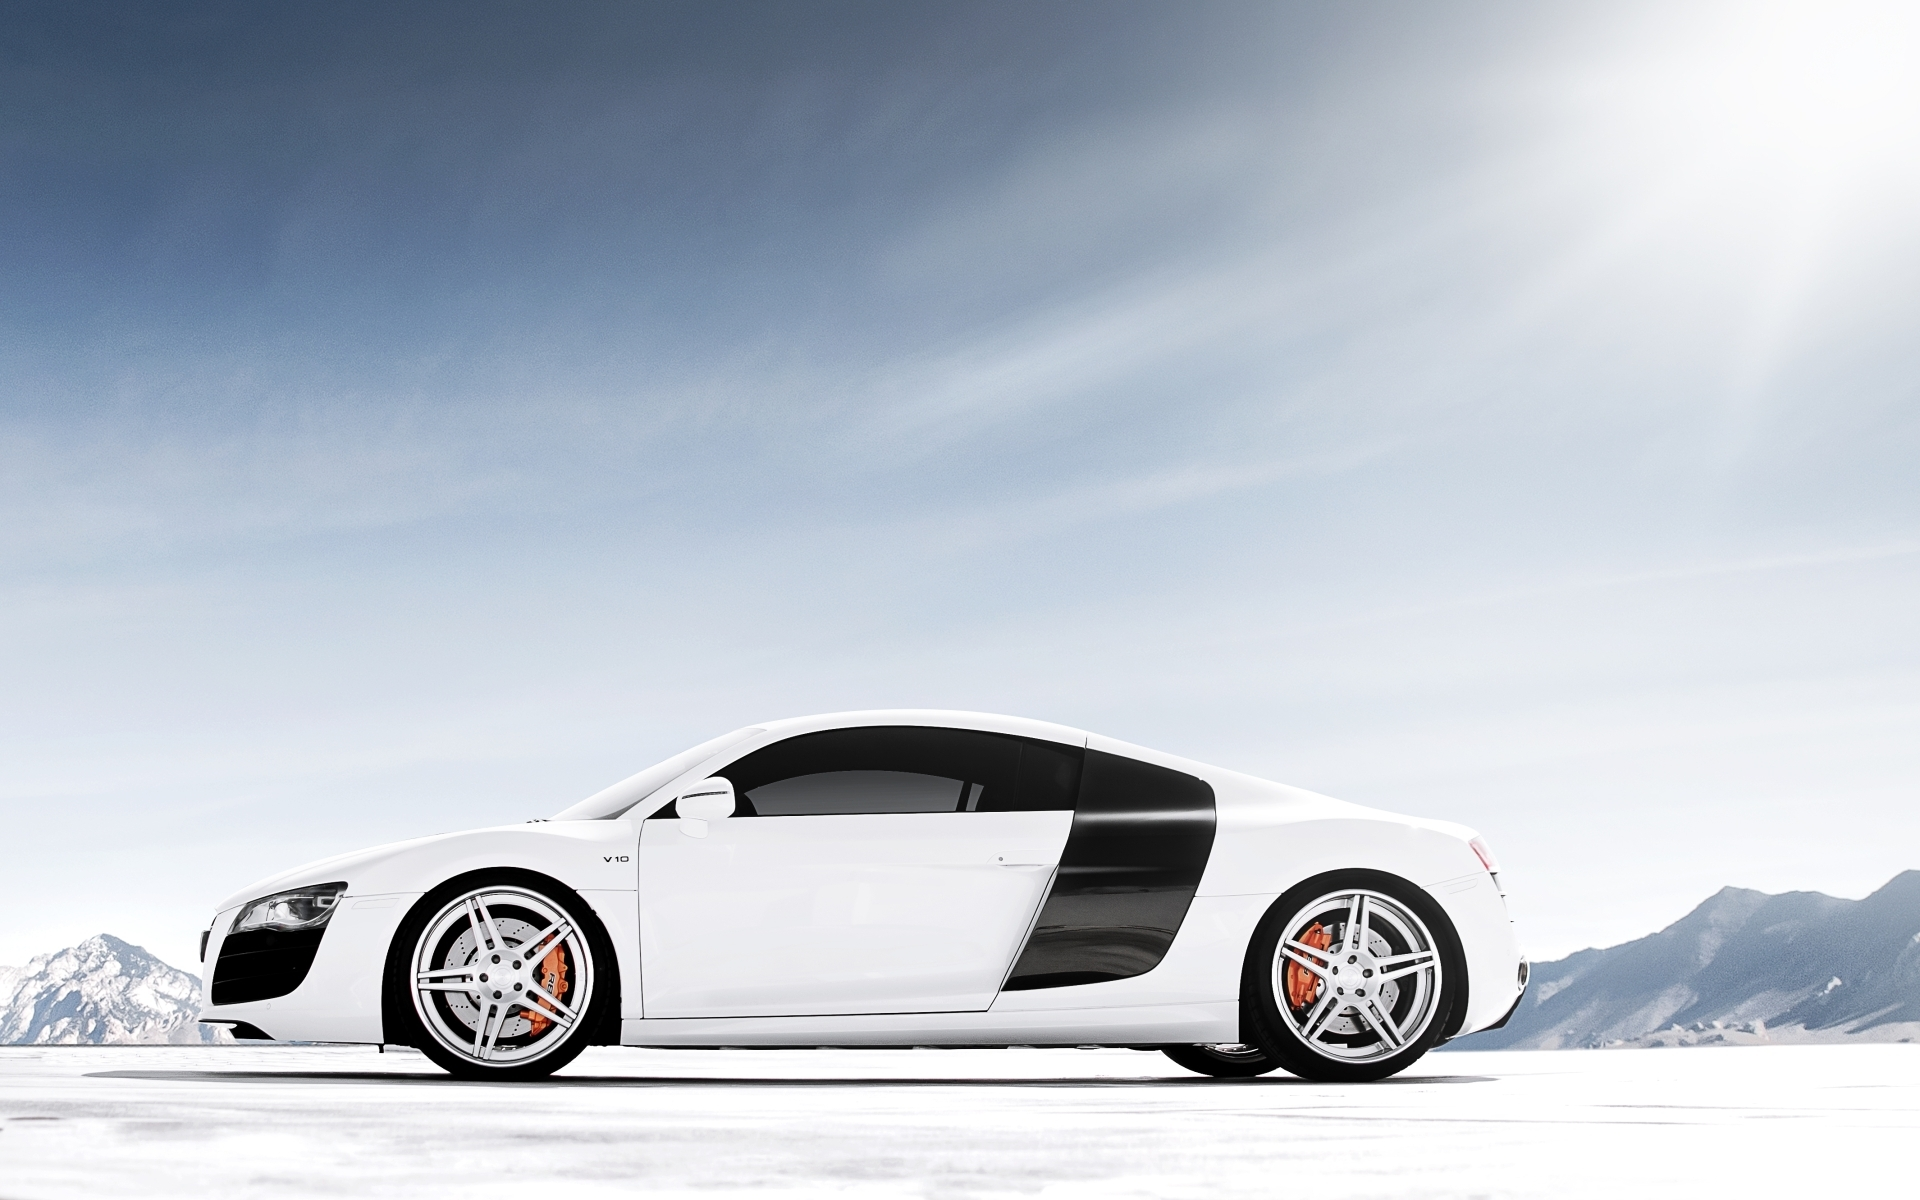 Audi R8 V10 2012 Car Wallpapers HD Wallpapers 1920x1200